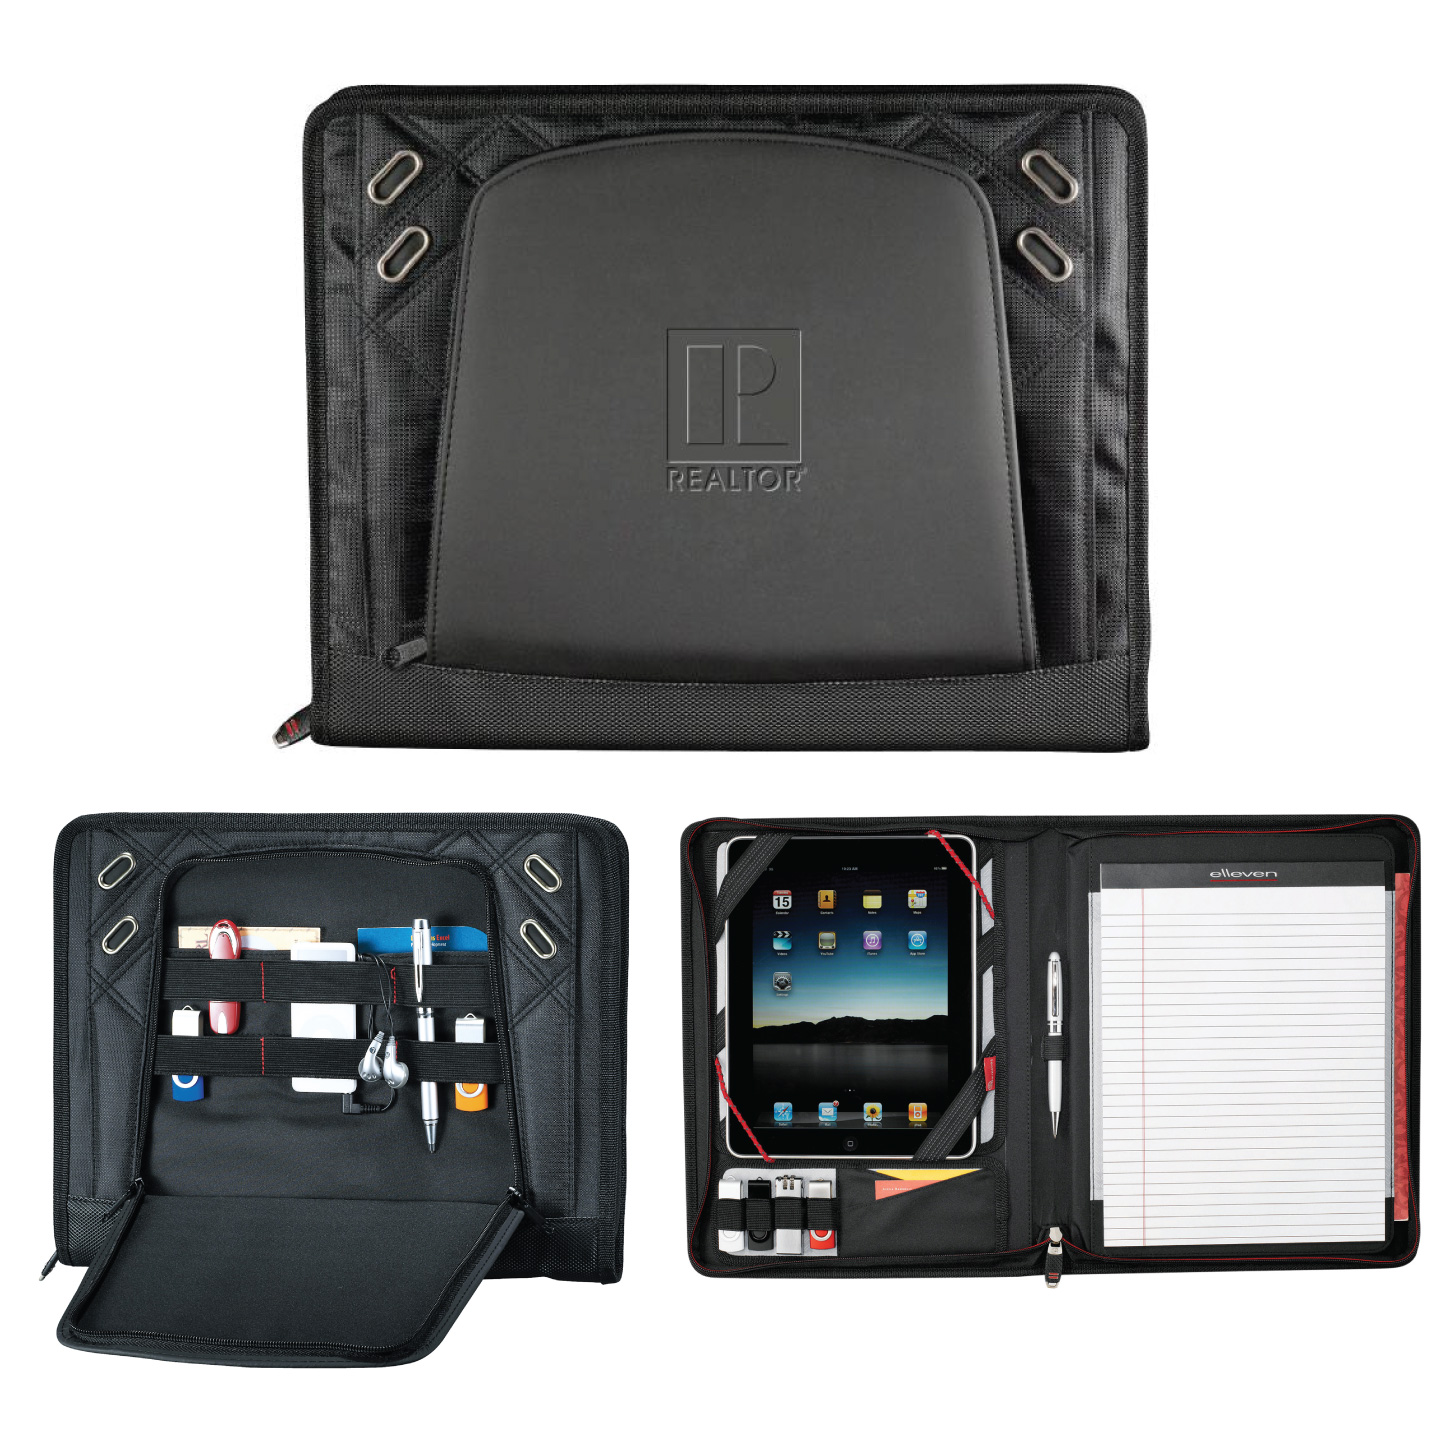 elleven™ TechTrap Organizer Journal, Organizer, Padfolio, Pen, President. Gift, Notebook, iPad, Tablet, Tech, Board, Association